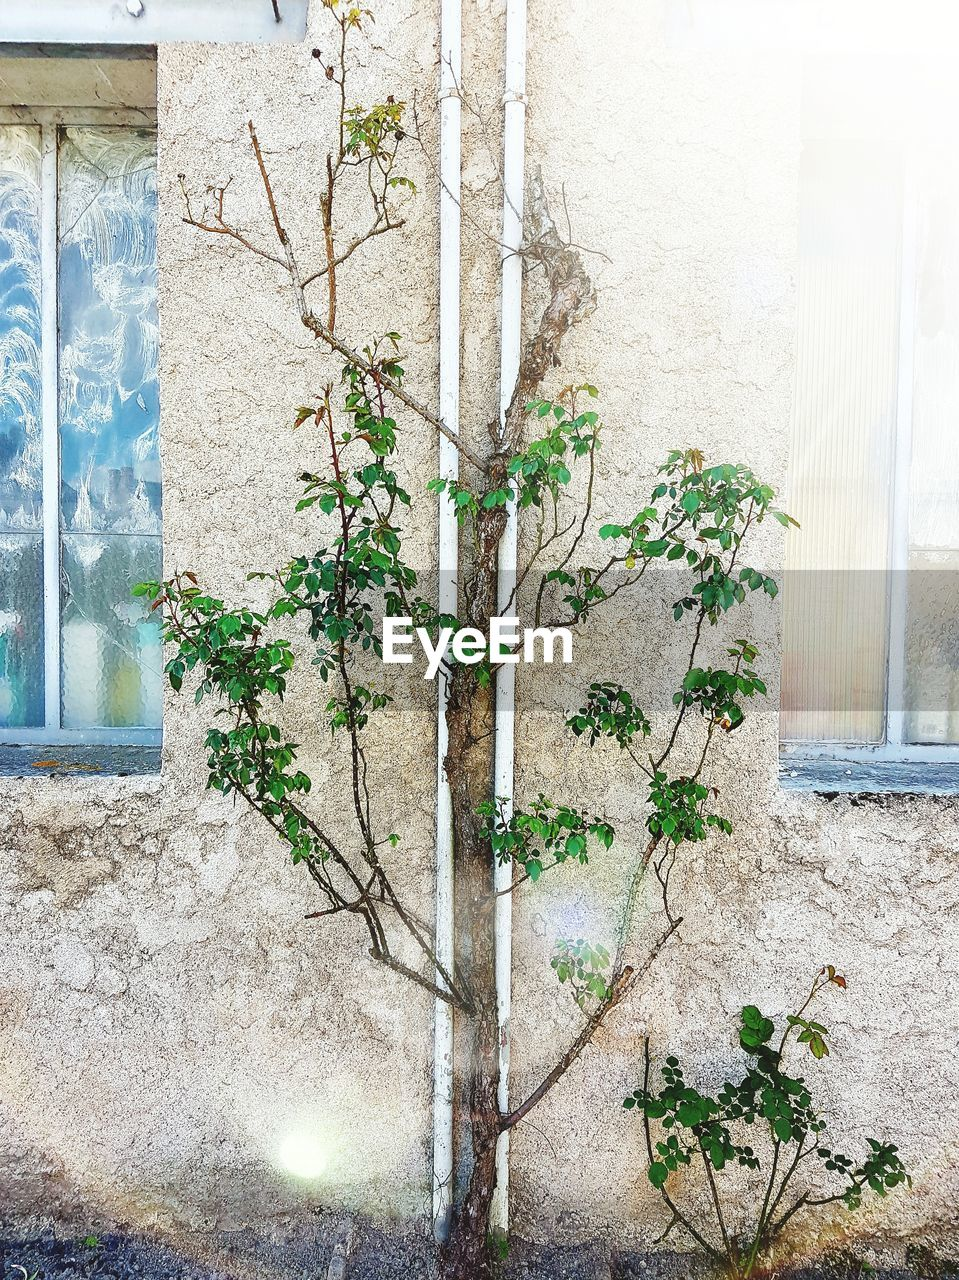 plant, growth, architecture, wall - building feature, built structure, ivy, building exterior, green color, day, creeper, growing, creeper plant, no people, leaf, potted plant, outdoors, nature, tree, branch, close-up